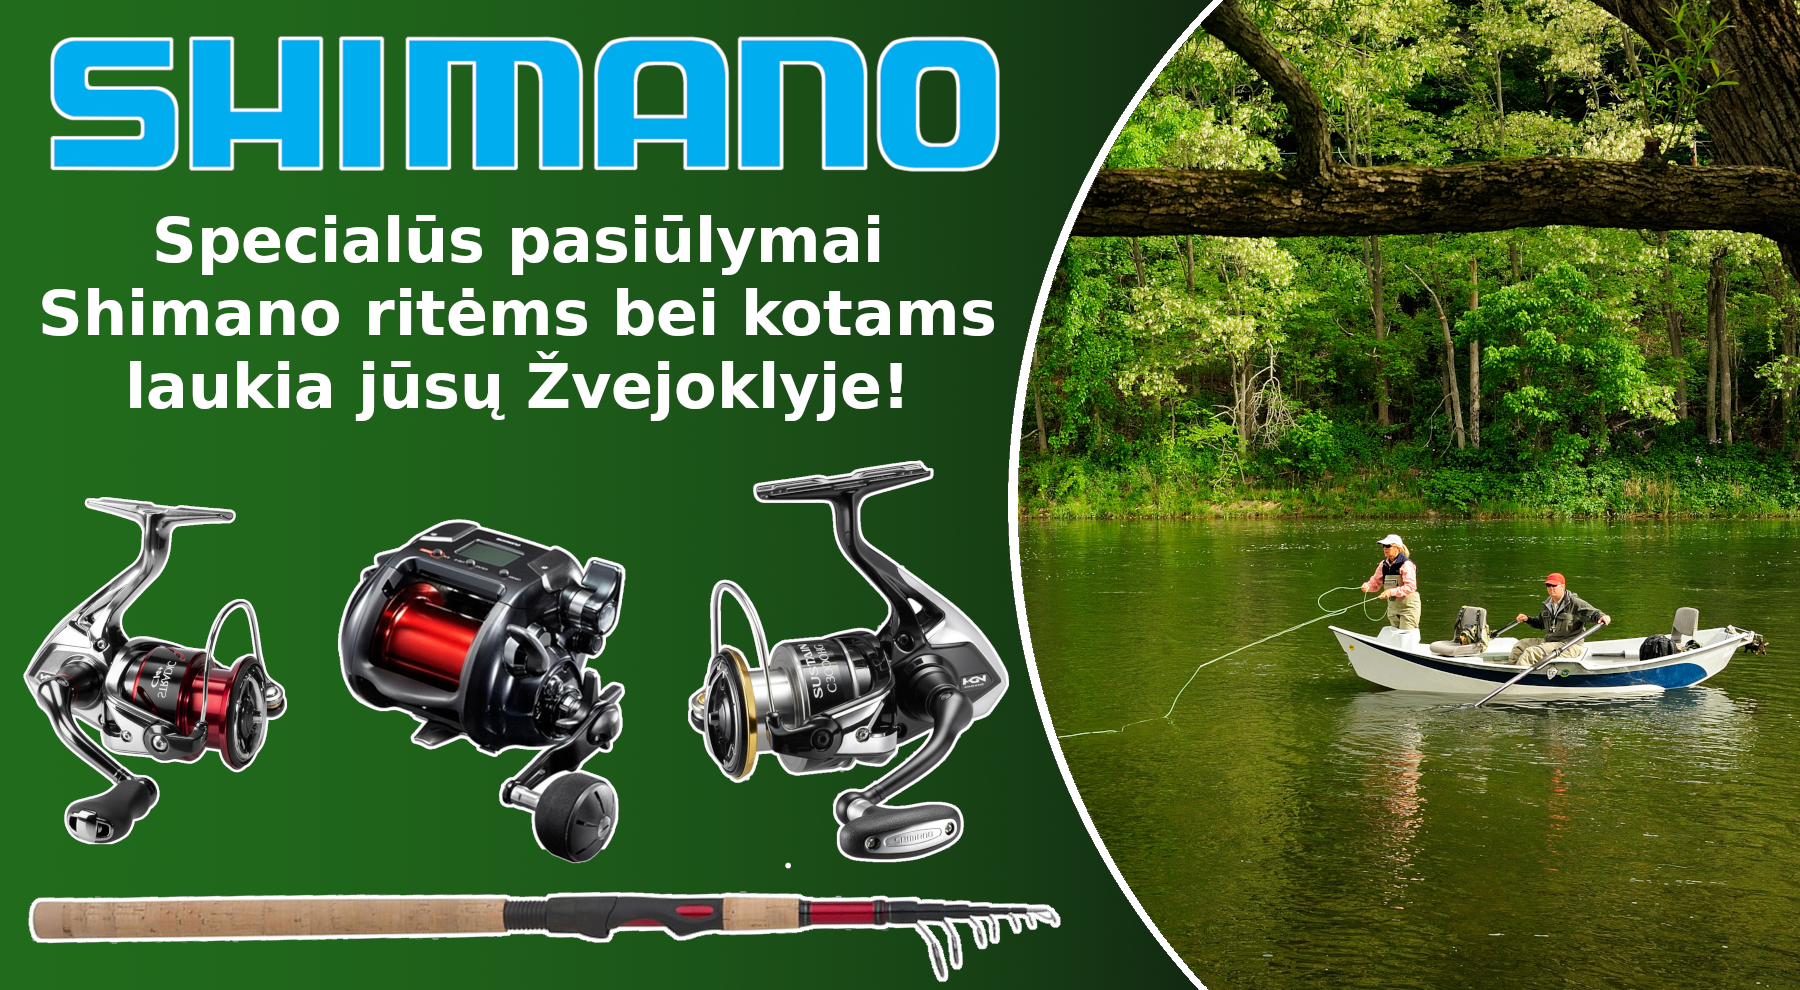 https://zvejoklis.lt/paieska?controller=search&cat_id=all&s=SHIMANO&spr_submit_search=Ie%C5%A1koti